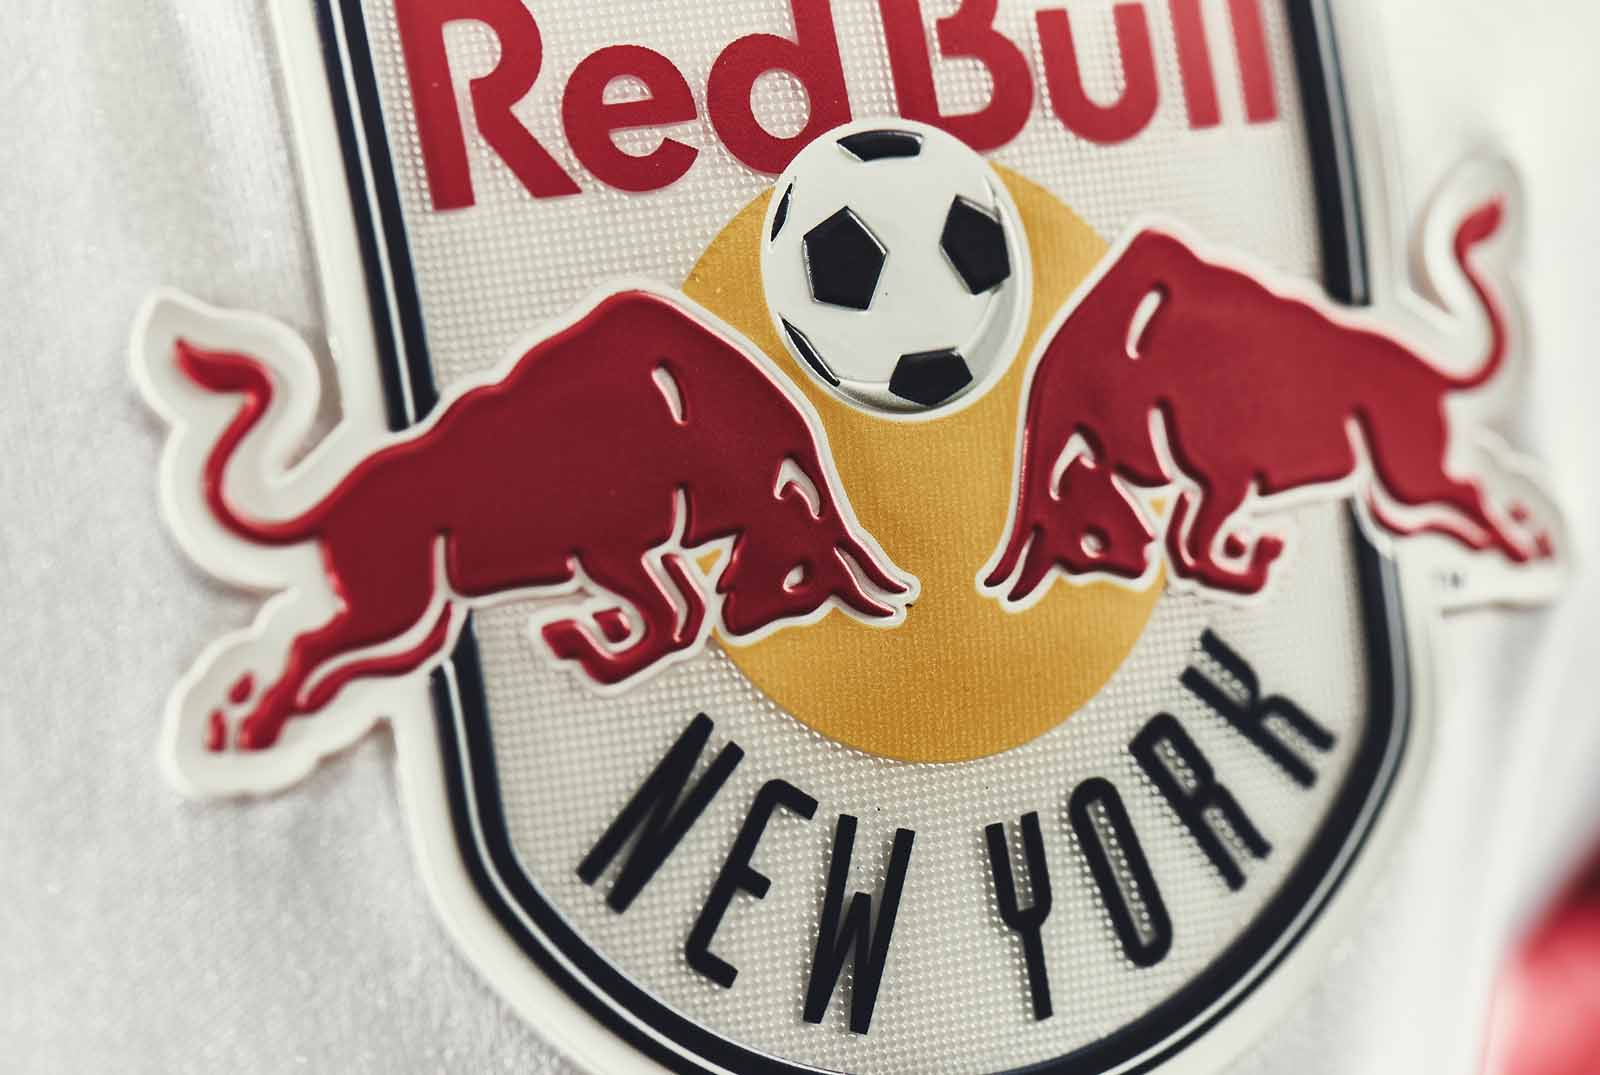 New adidas 2015 16 kits on the sleeves will be the new 2015 mls logo